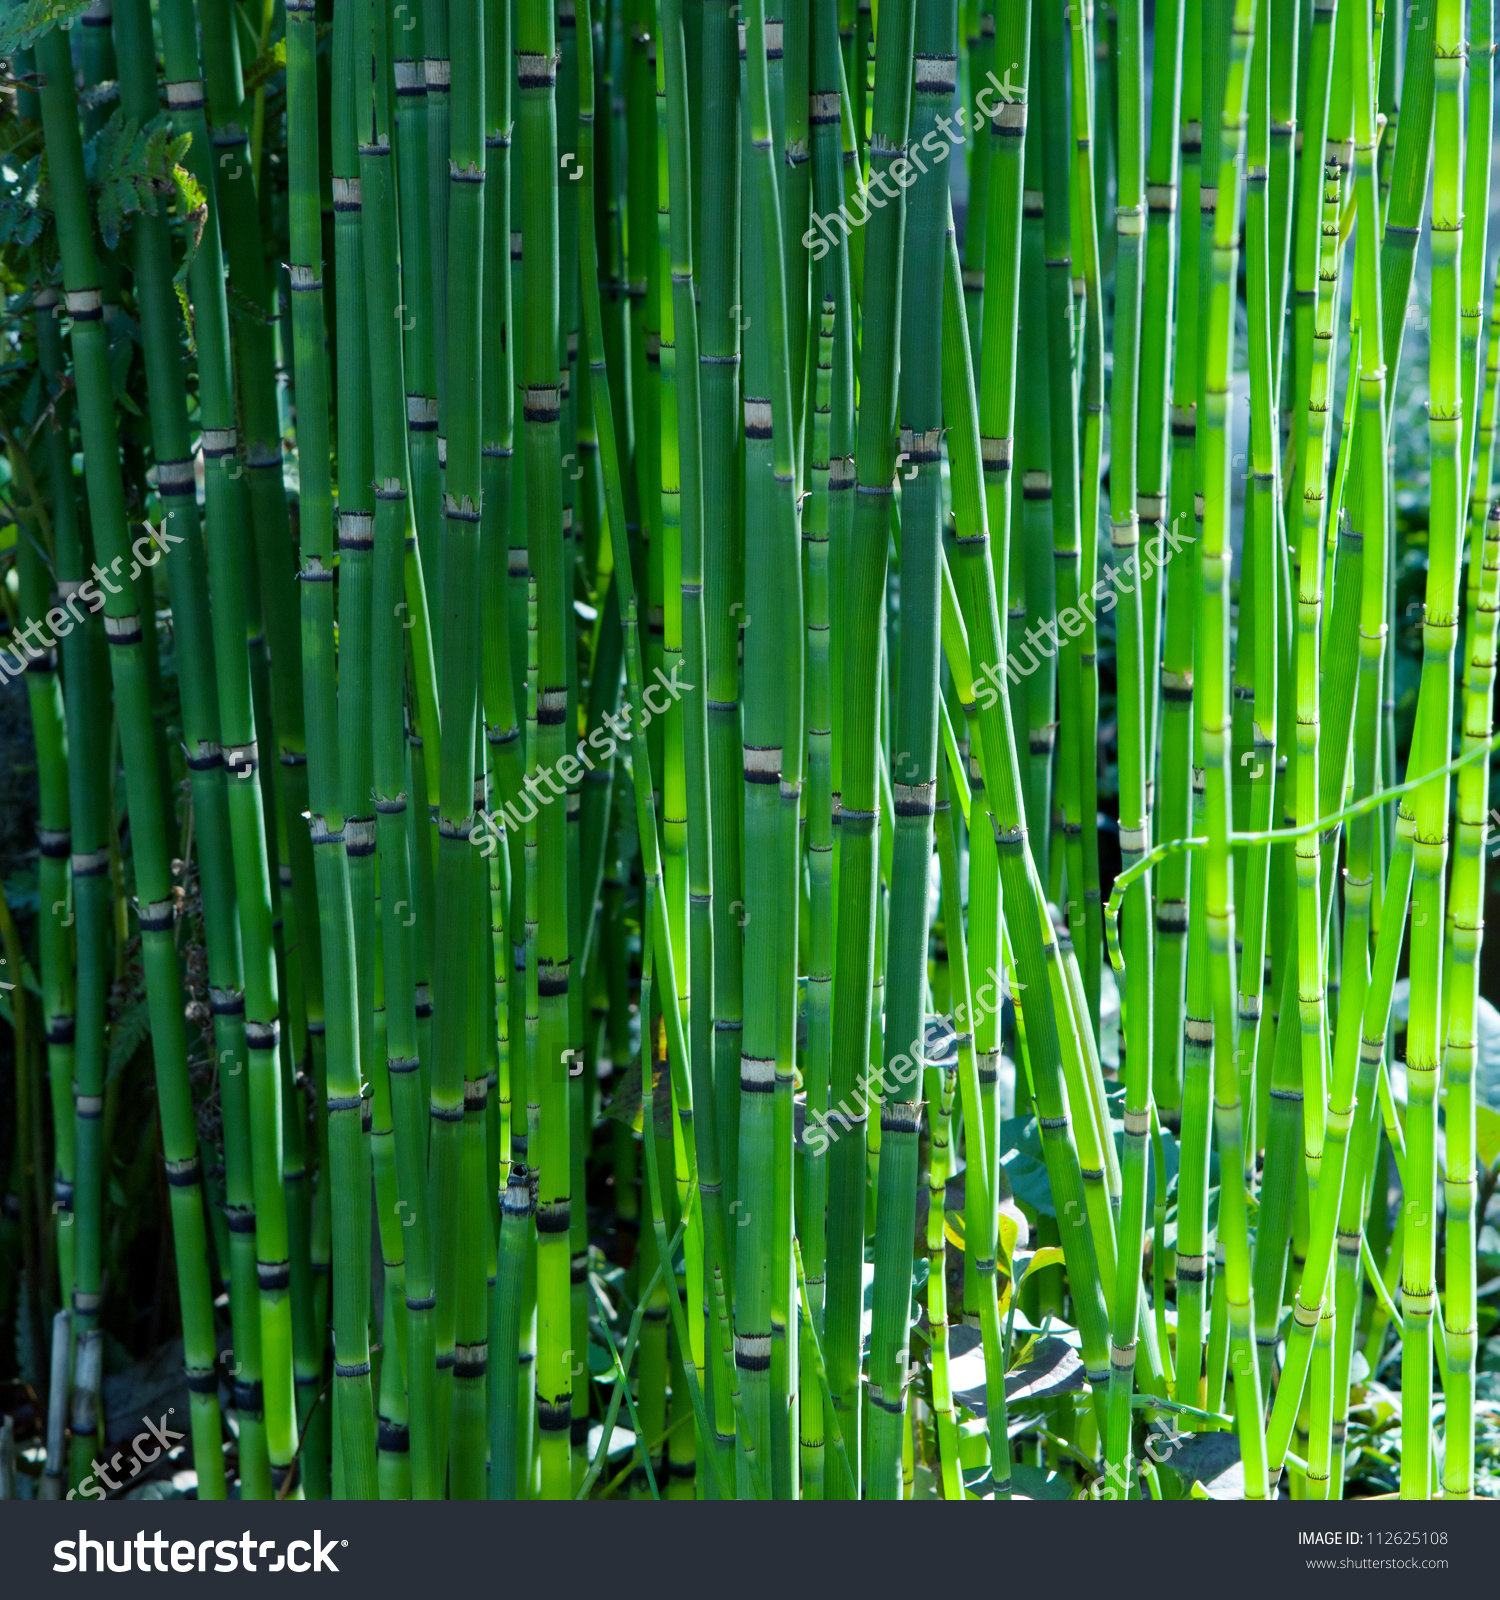 Bamboo Like Looking Rough Horse Tail Stock Photo 112625108.